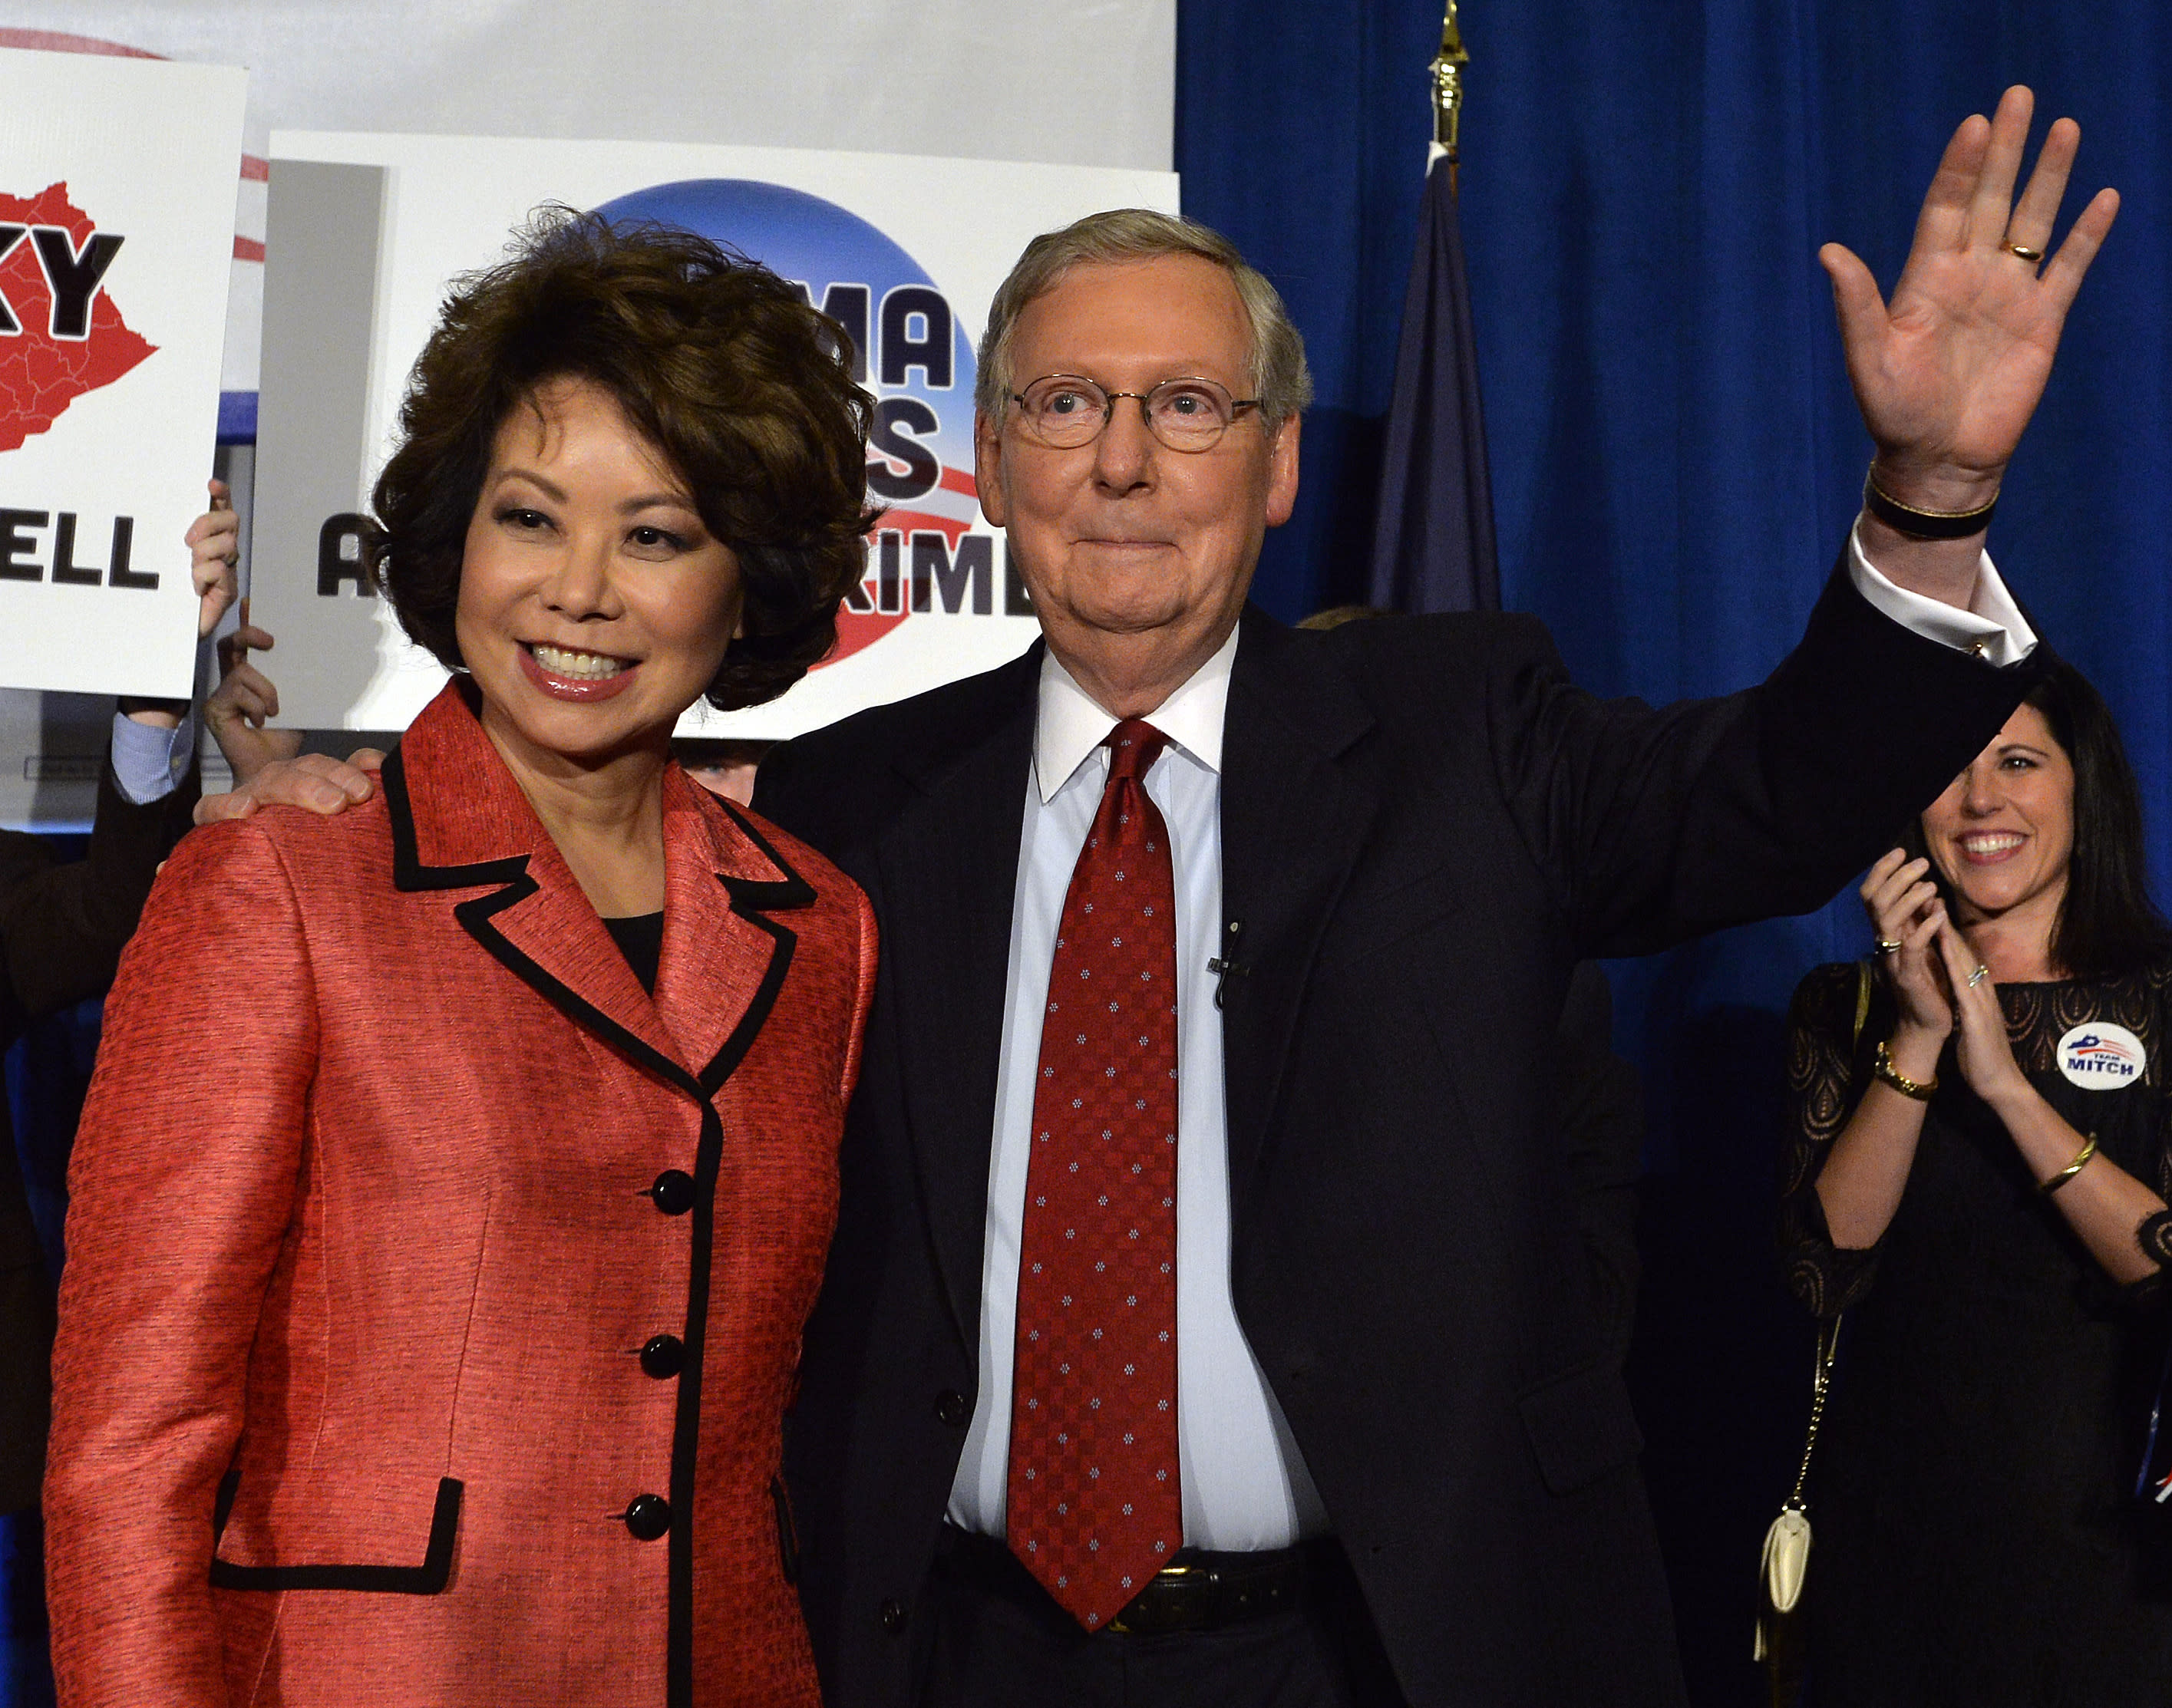 Image result for images of McConnell and Chao